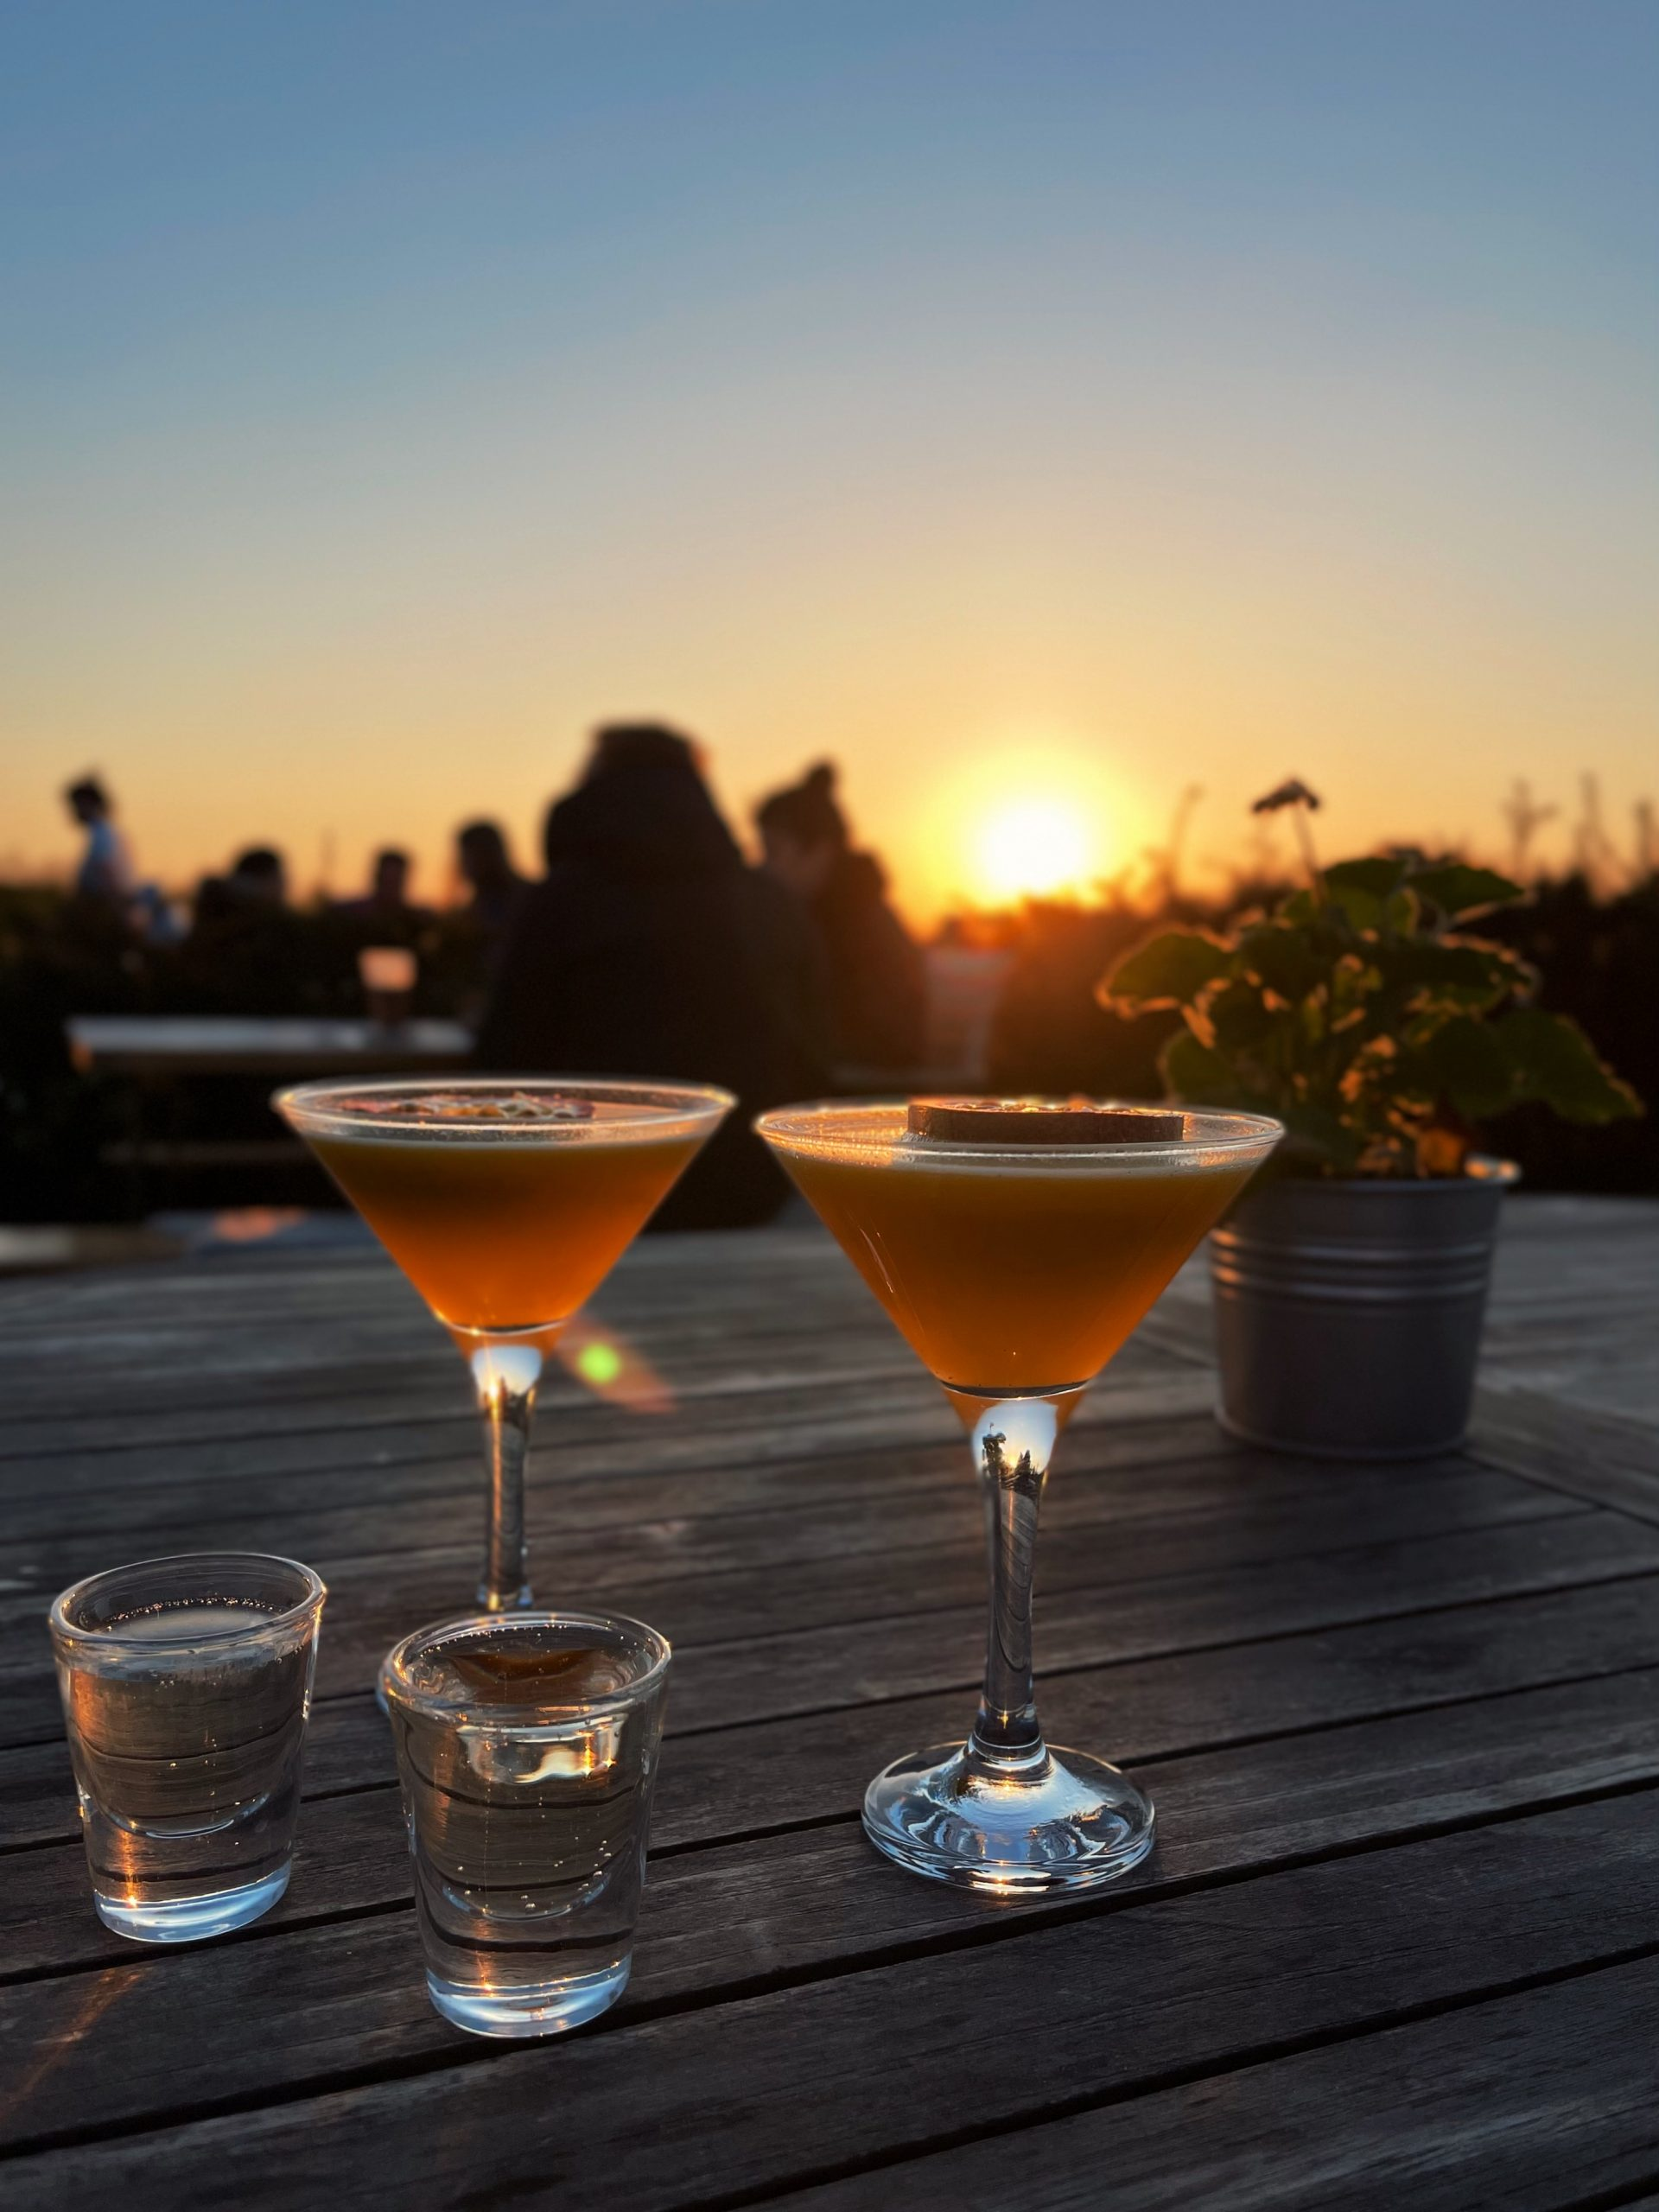 Summer-Sundays-Cocktails-At-Primrose-Hill-Farm-by-The-Kitchen-and-Co